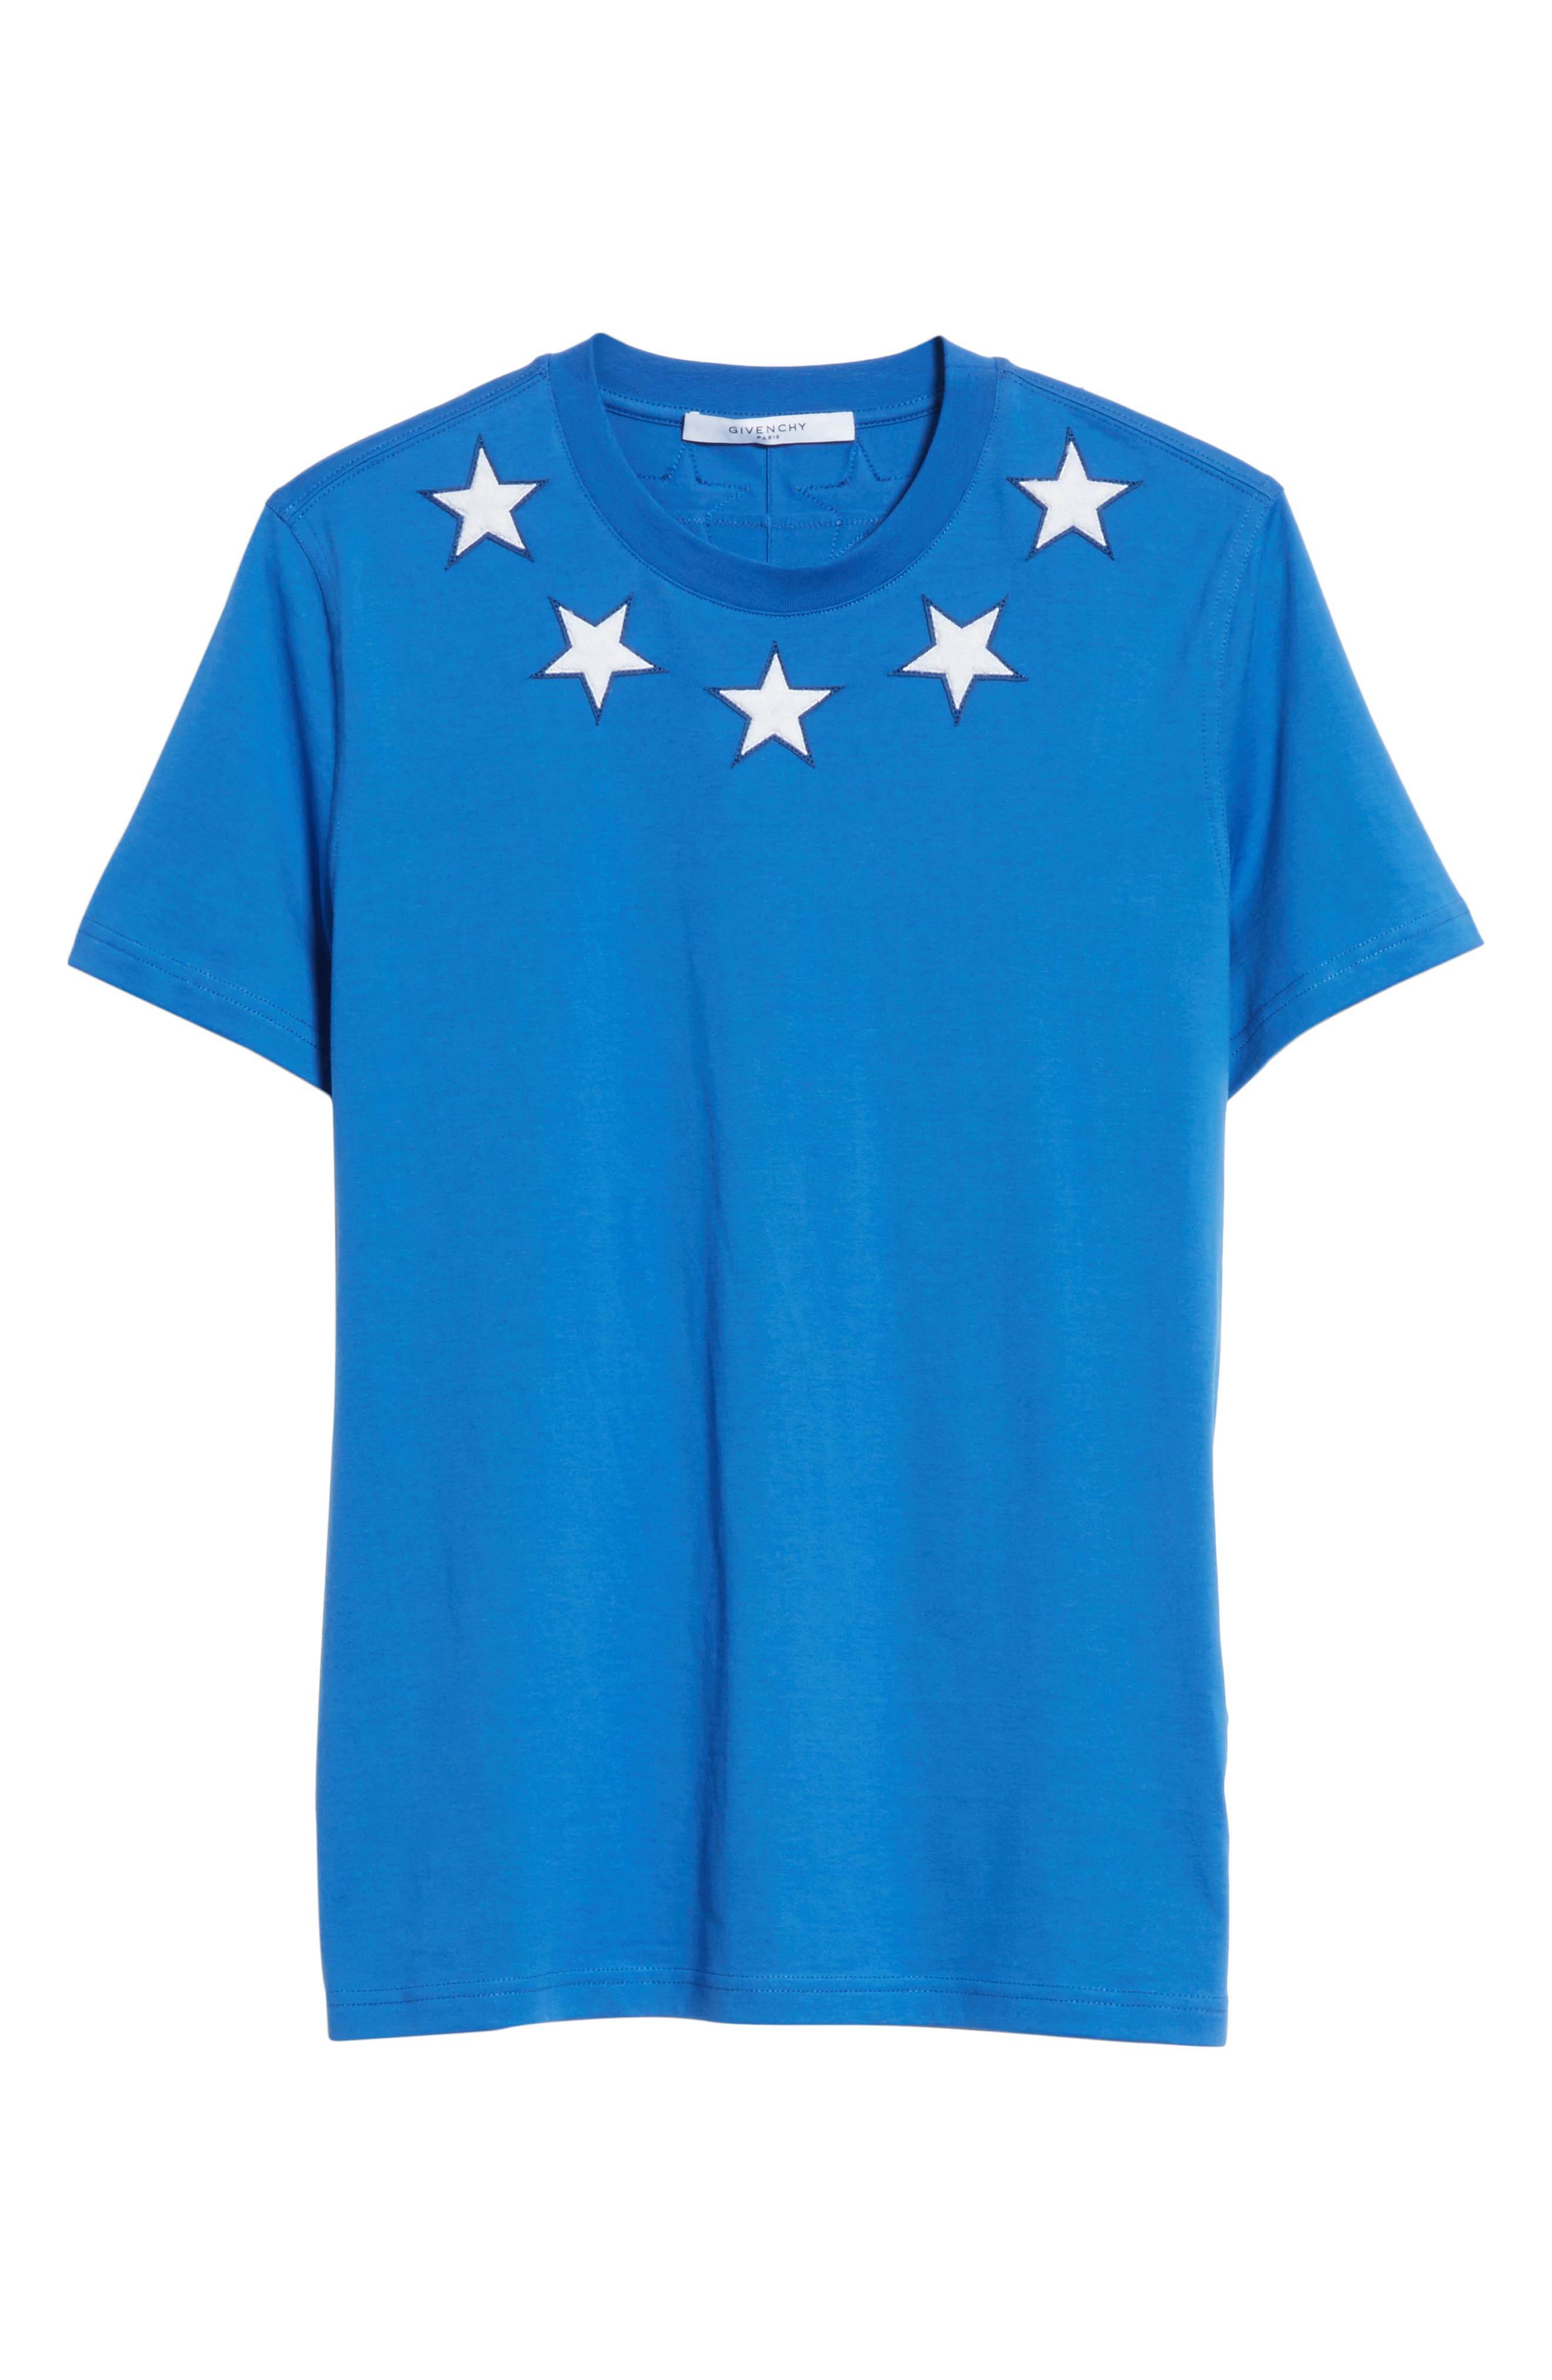 Star Appliqué T-Shirt,                             Main thumbnail 1, color,                             Blue